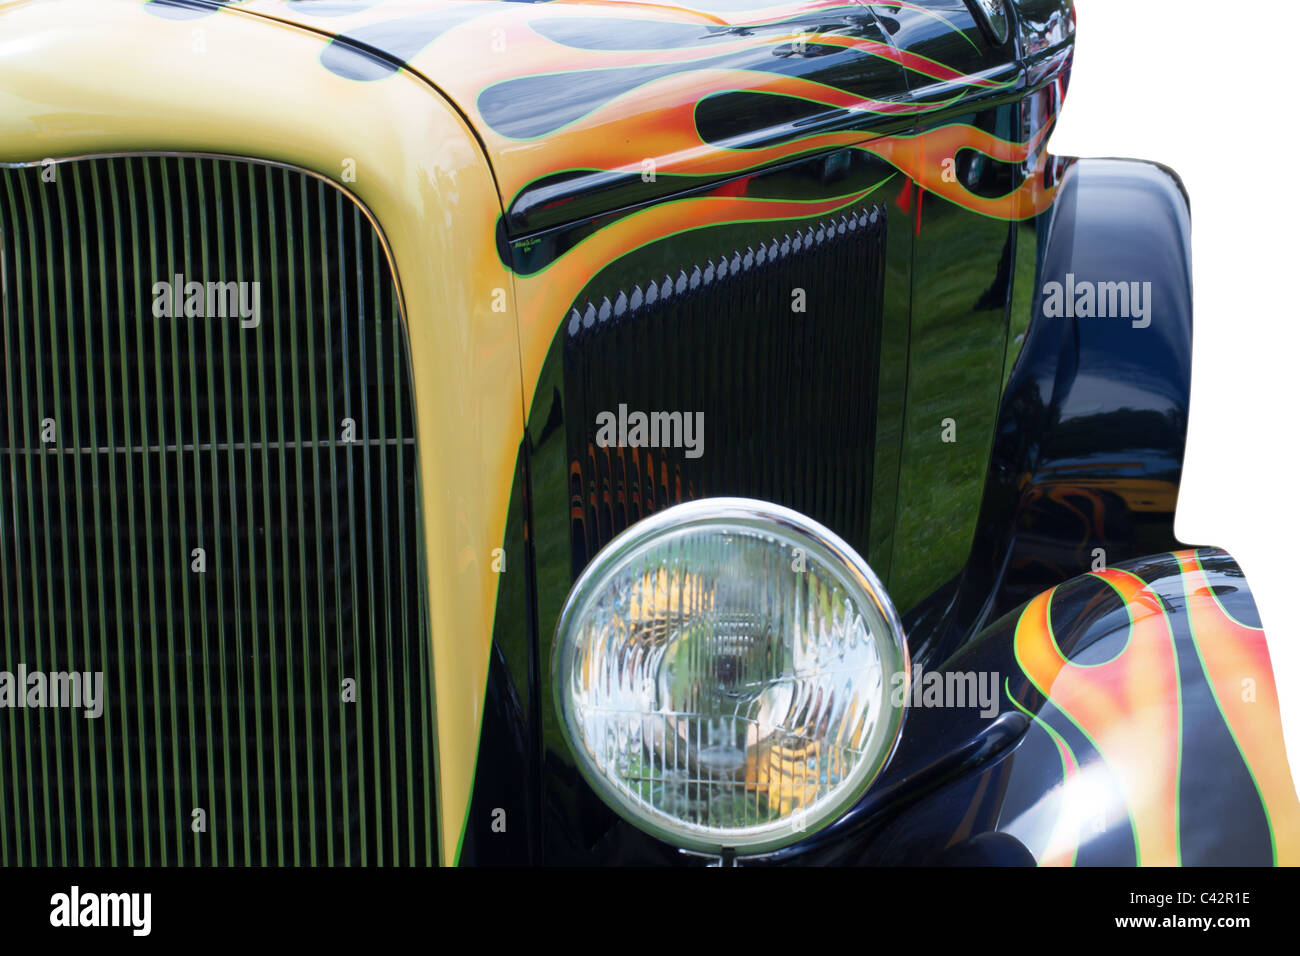 Hot Rod With Flames Paint Job Stock Photo 36941338 Alamy